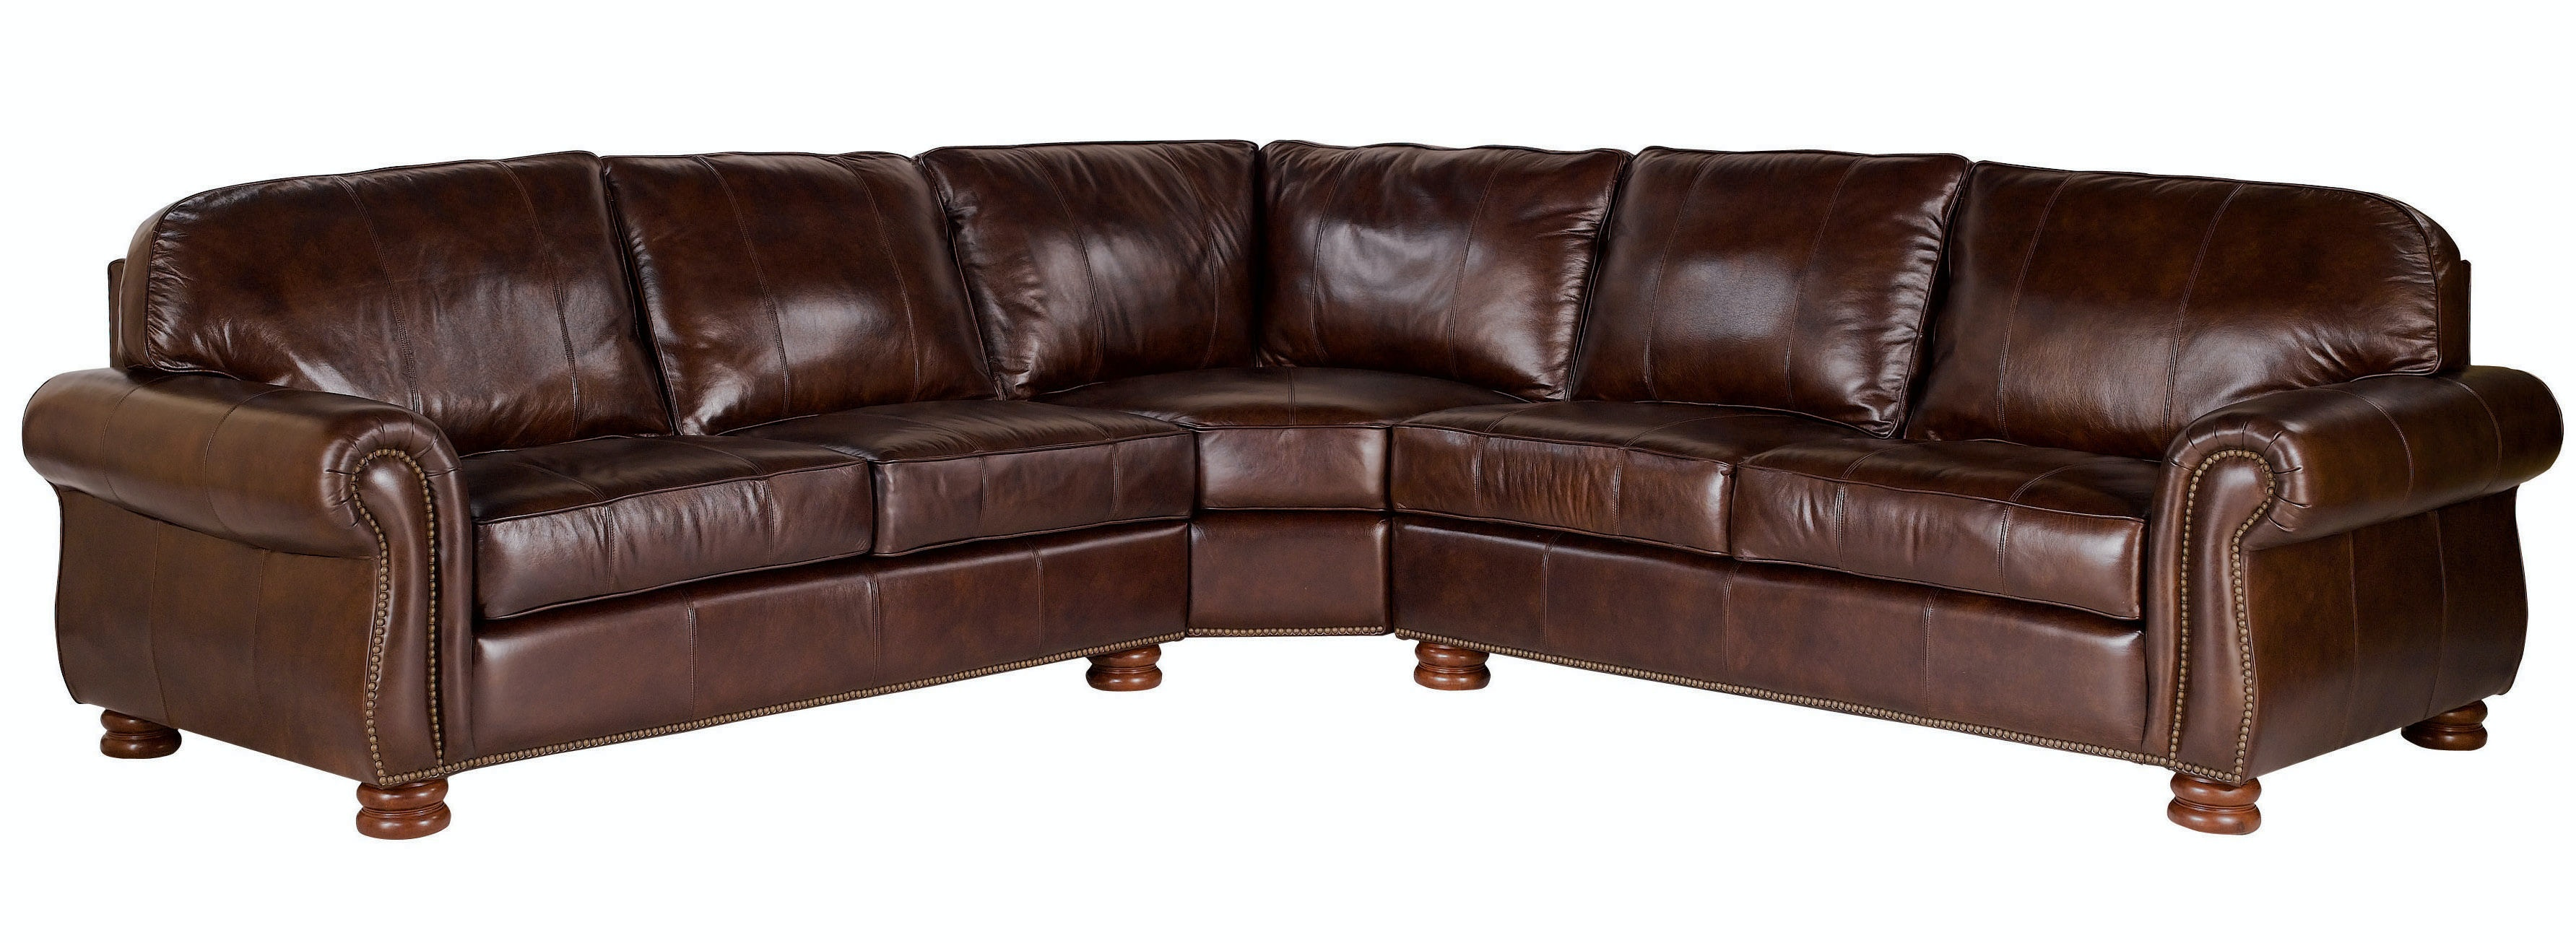 benjamin 3piece leather sectional kt42960